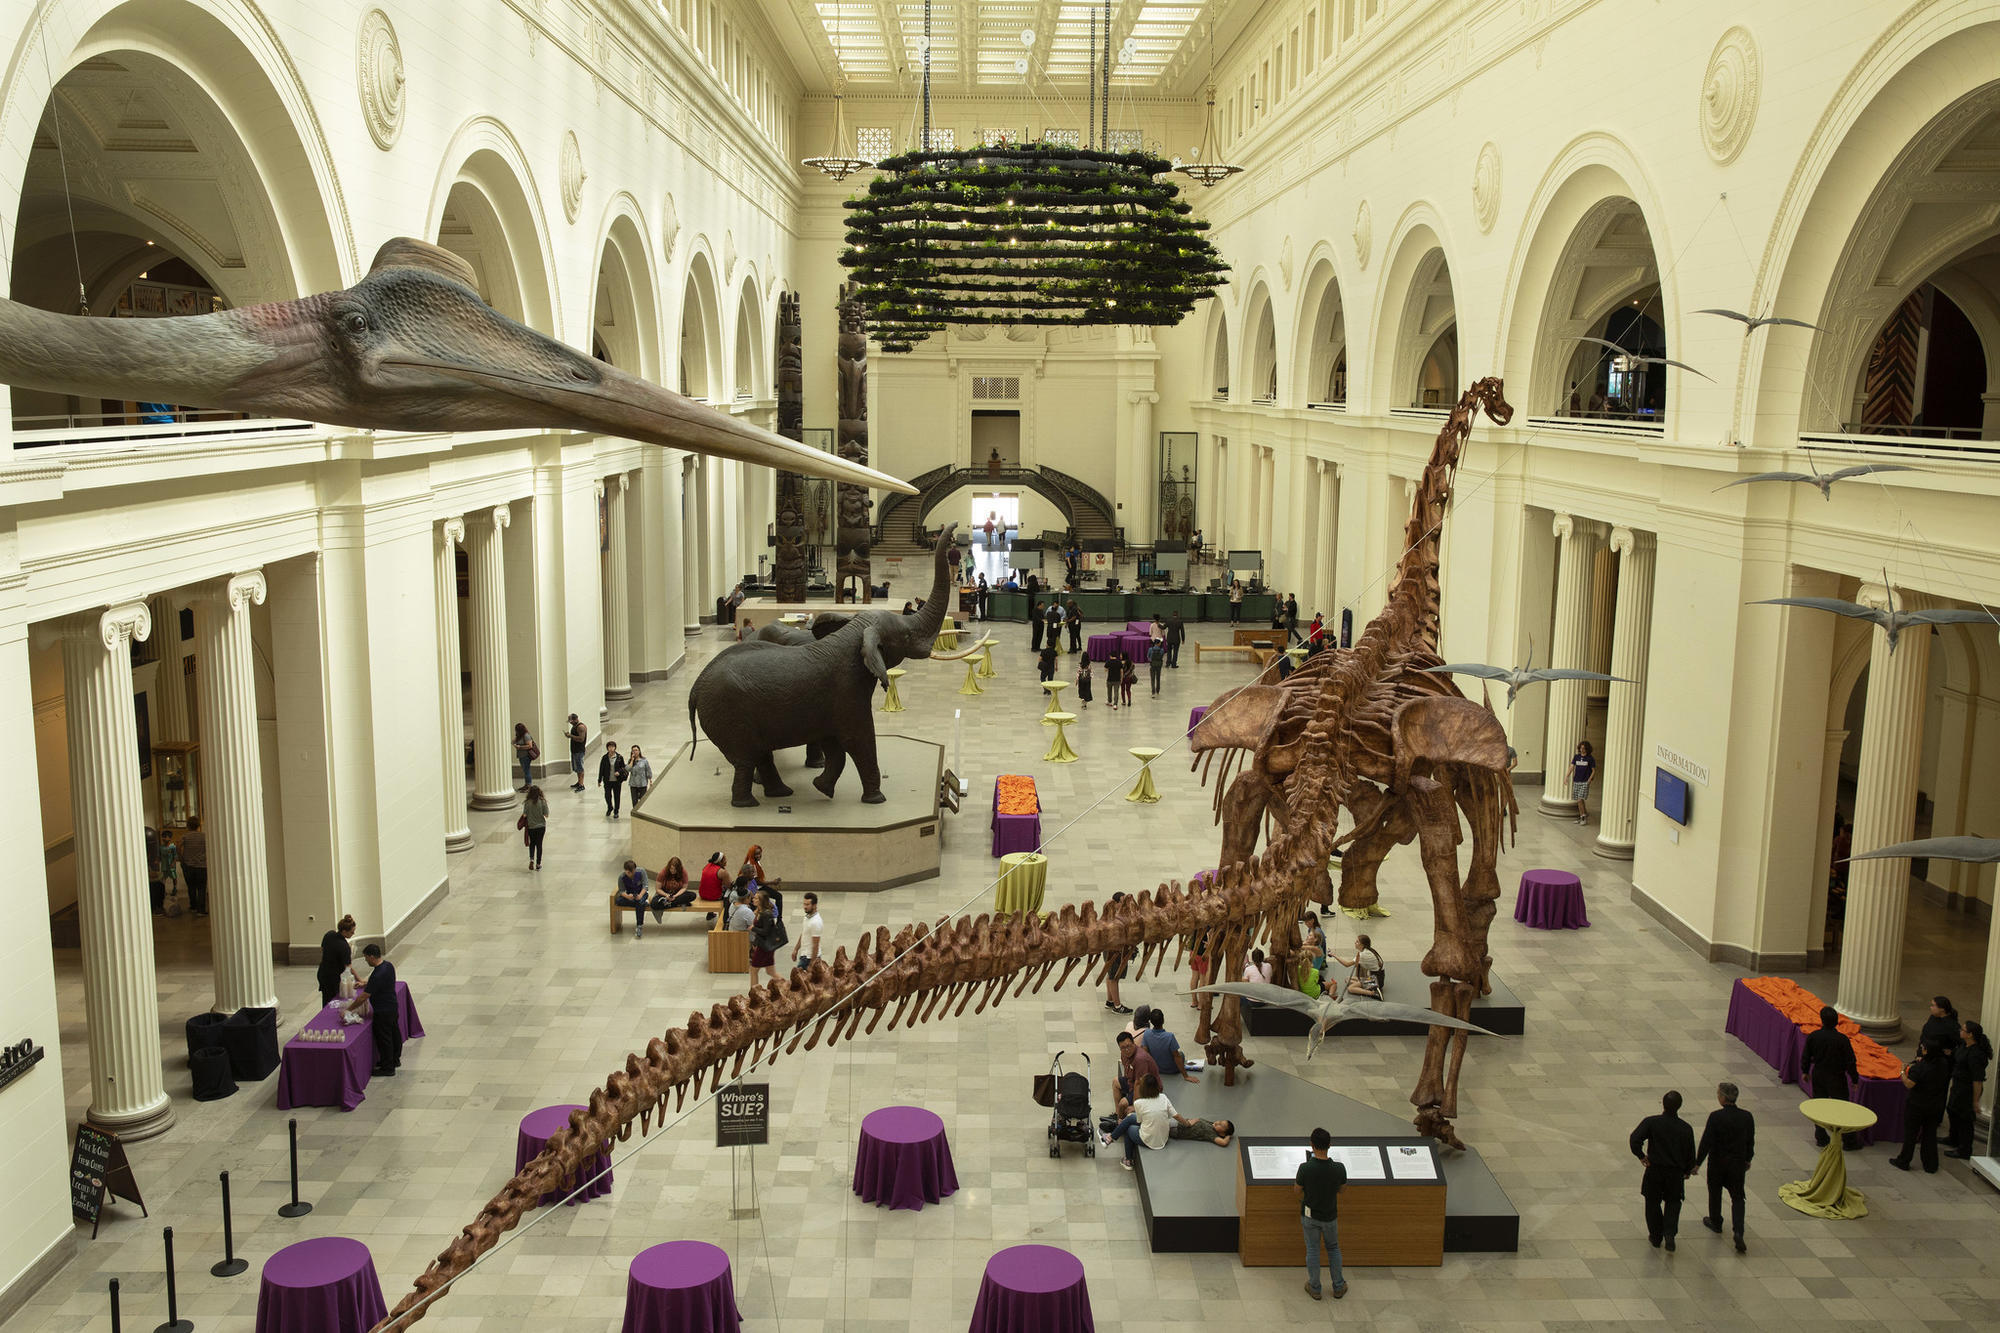 With A Skeleton And Megaplanters The Field Museum Fleshes